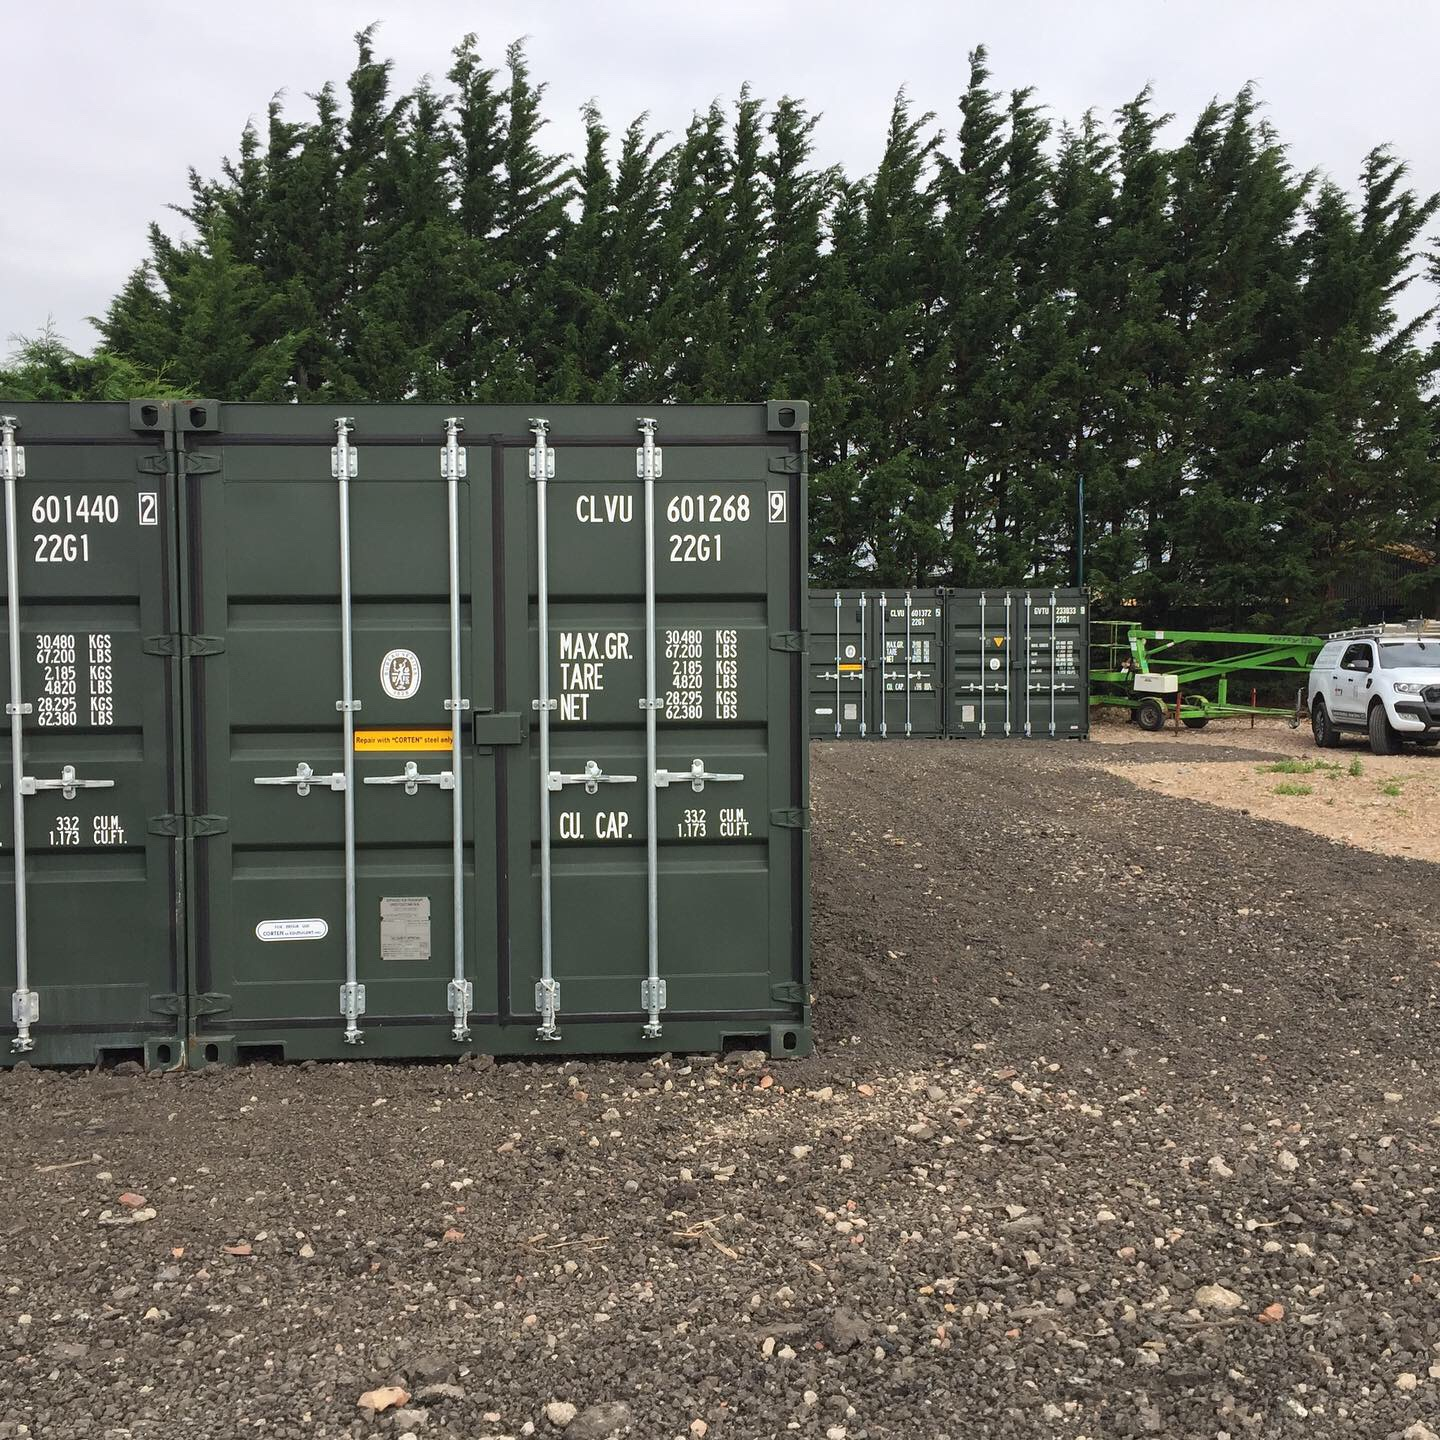 PadStore Self Storage - Melton a storage company in Melton Airfield Business Park, Dalby Road, Leicestershire, Melton Mowbray, UK